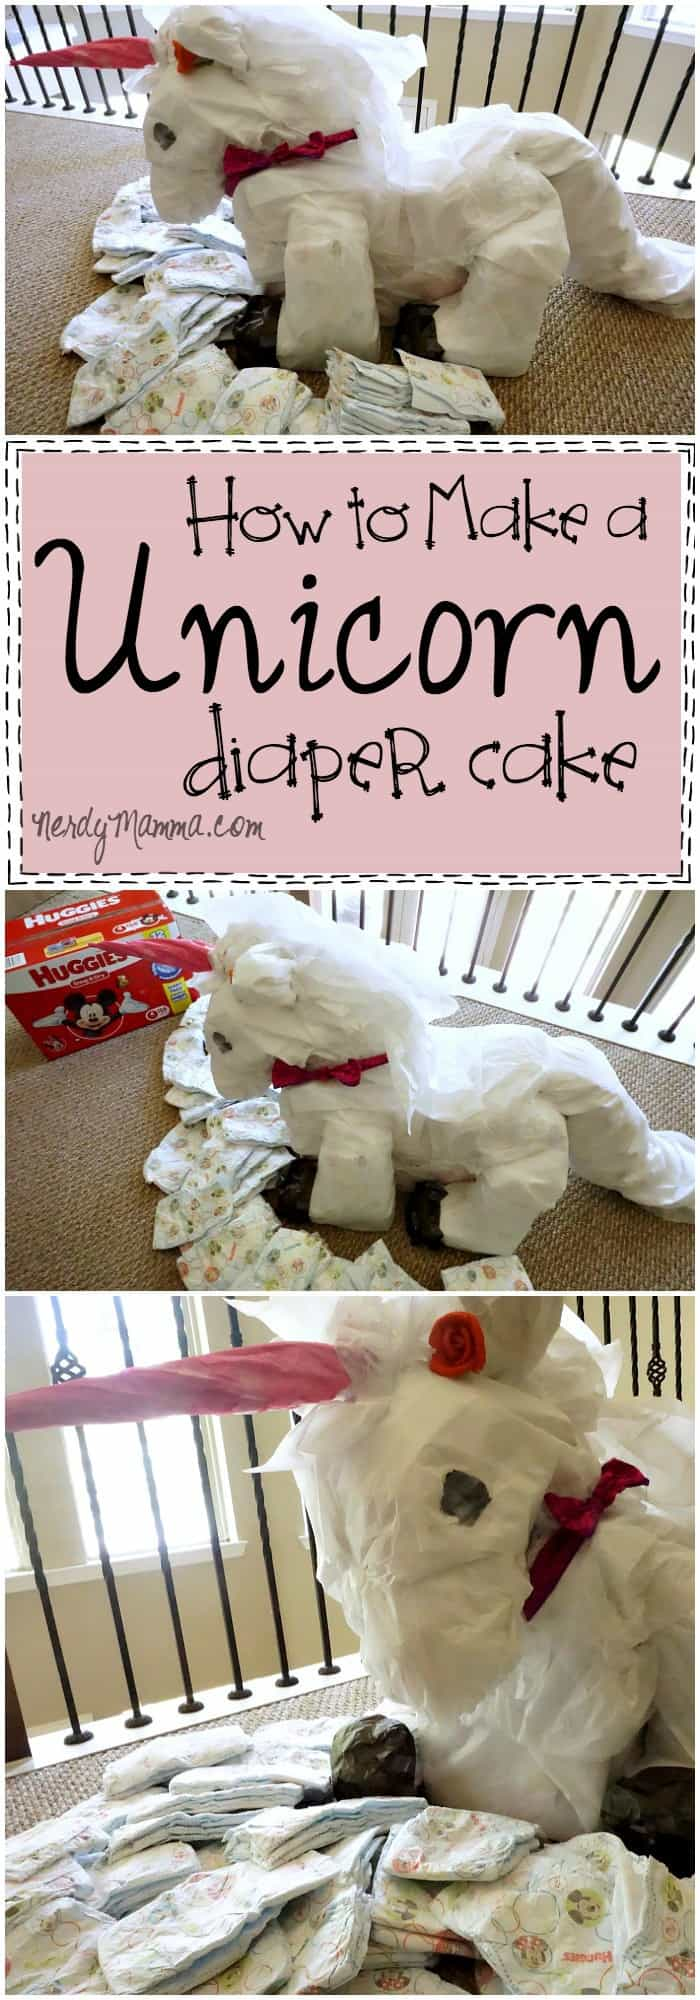 This Unicorn Diaper Cake tutorial is so cute! I love the idea...can't wait for a baby shower to make one! LOL!